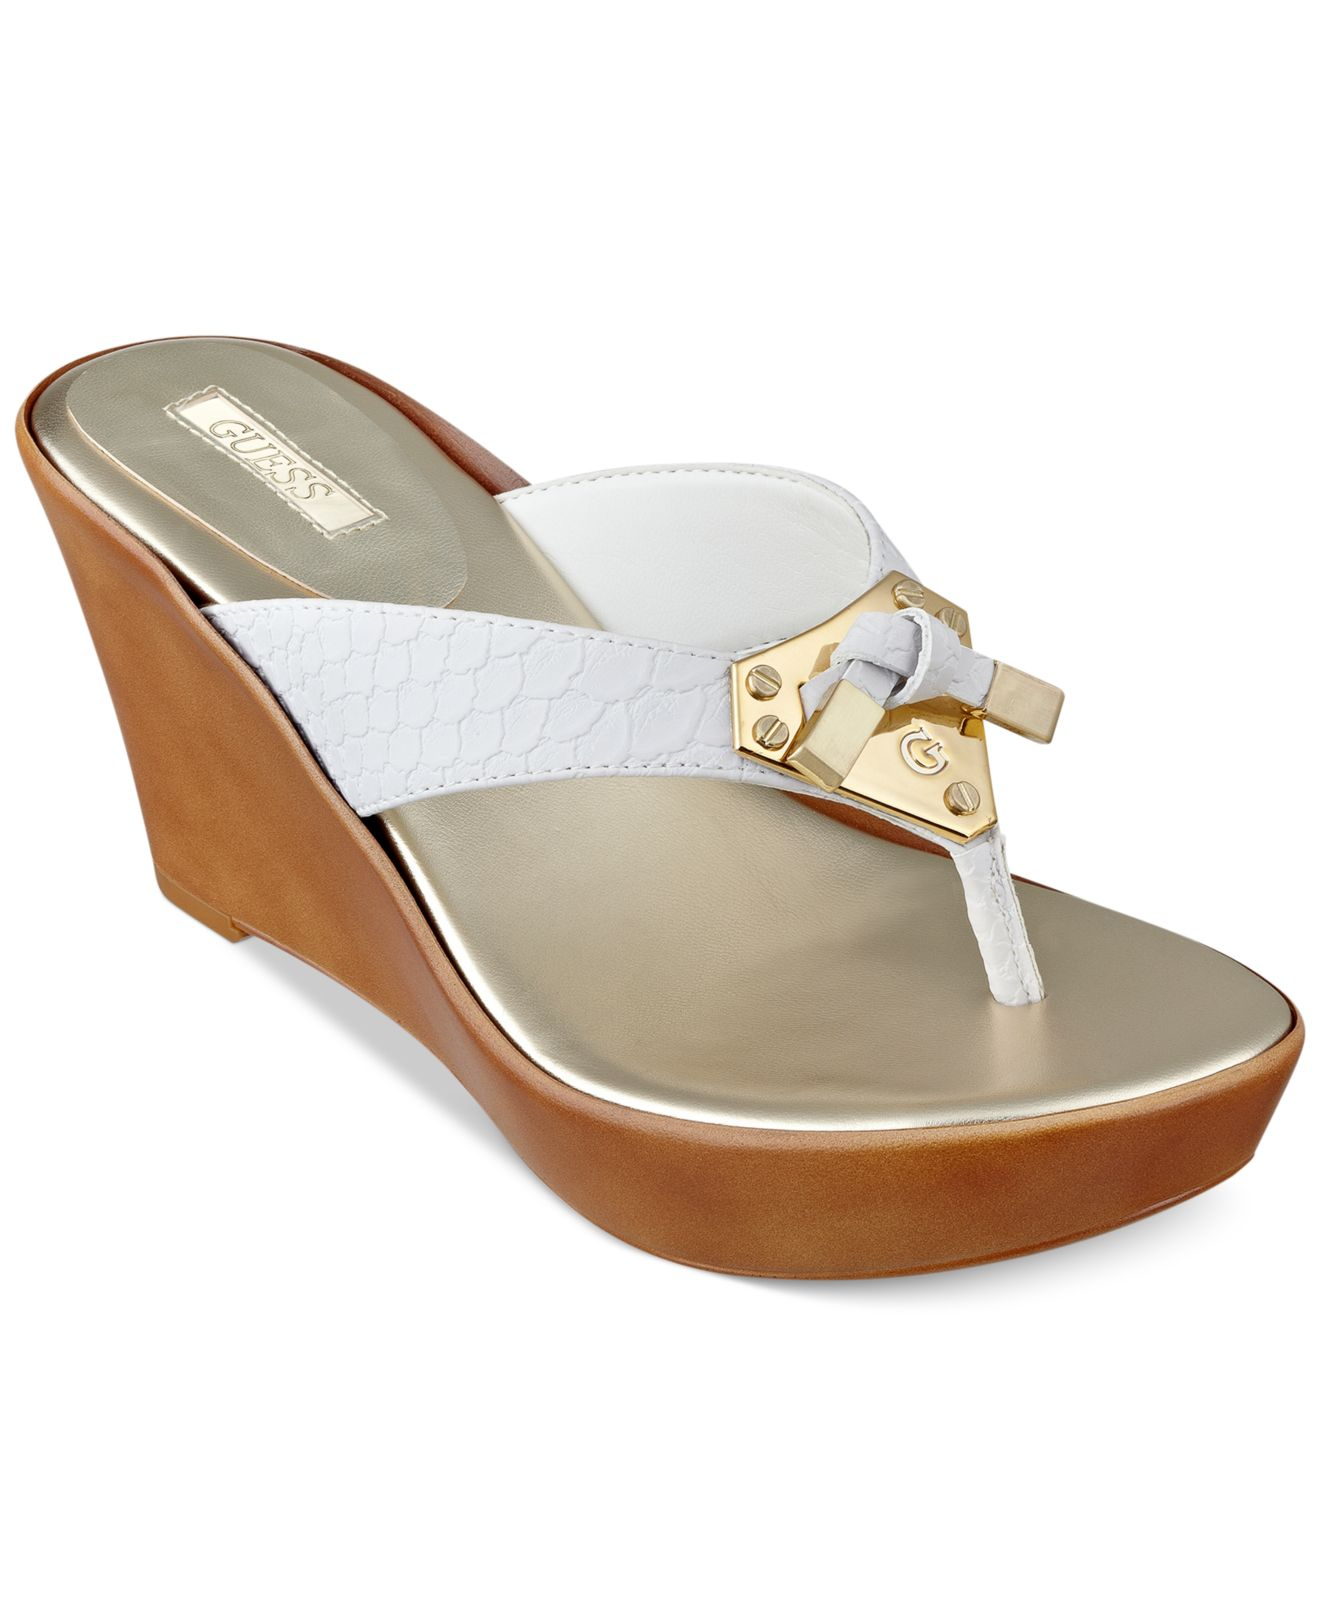 30d59e8625 Guess Xandie Platform Wedge Thong Sandals in White - Lyst